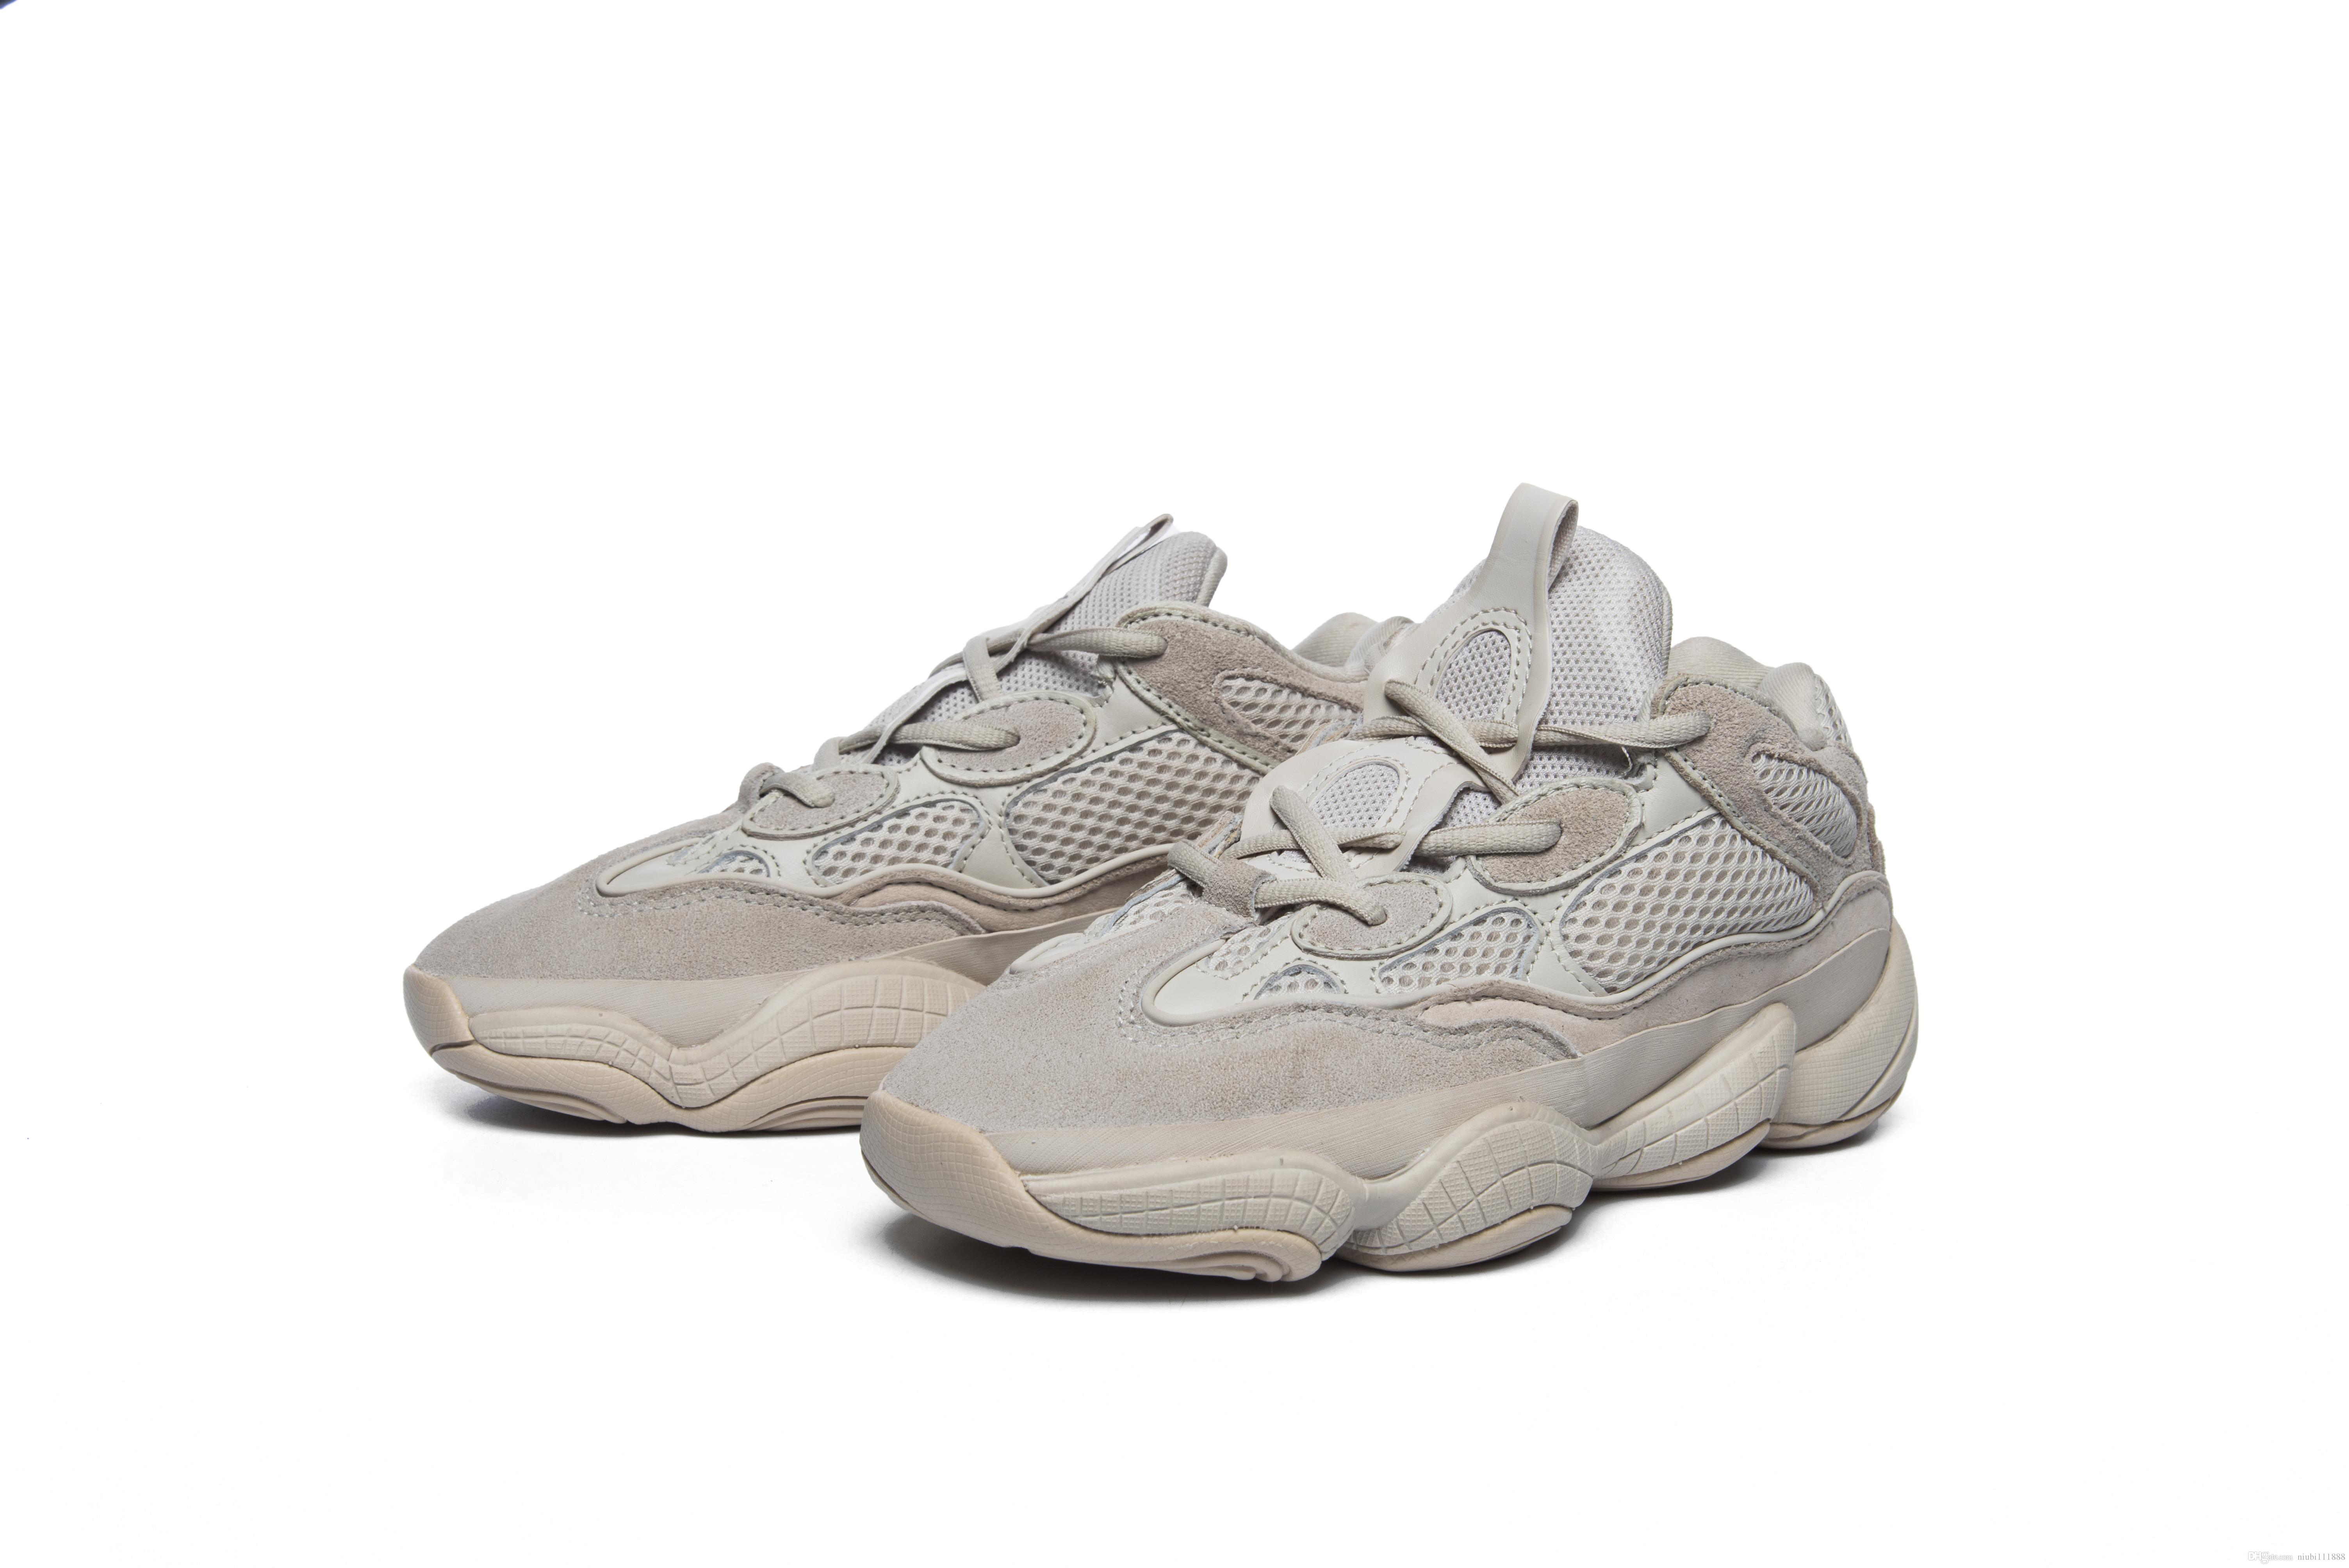 newest a0957 3fdbf (With Box) 2019 New Yeezys Yezzy Yezzys Yeezy 500 Shoes Blush Desert Rat  Wave Shoes Athletic Shoes Sneakers eur 36-45